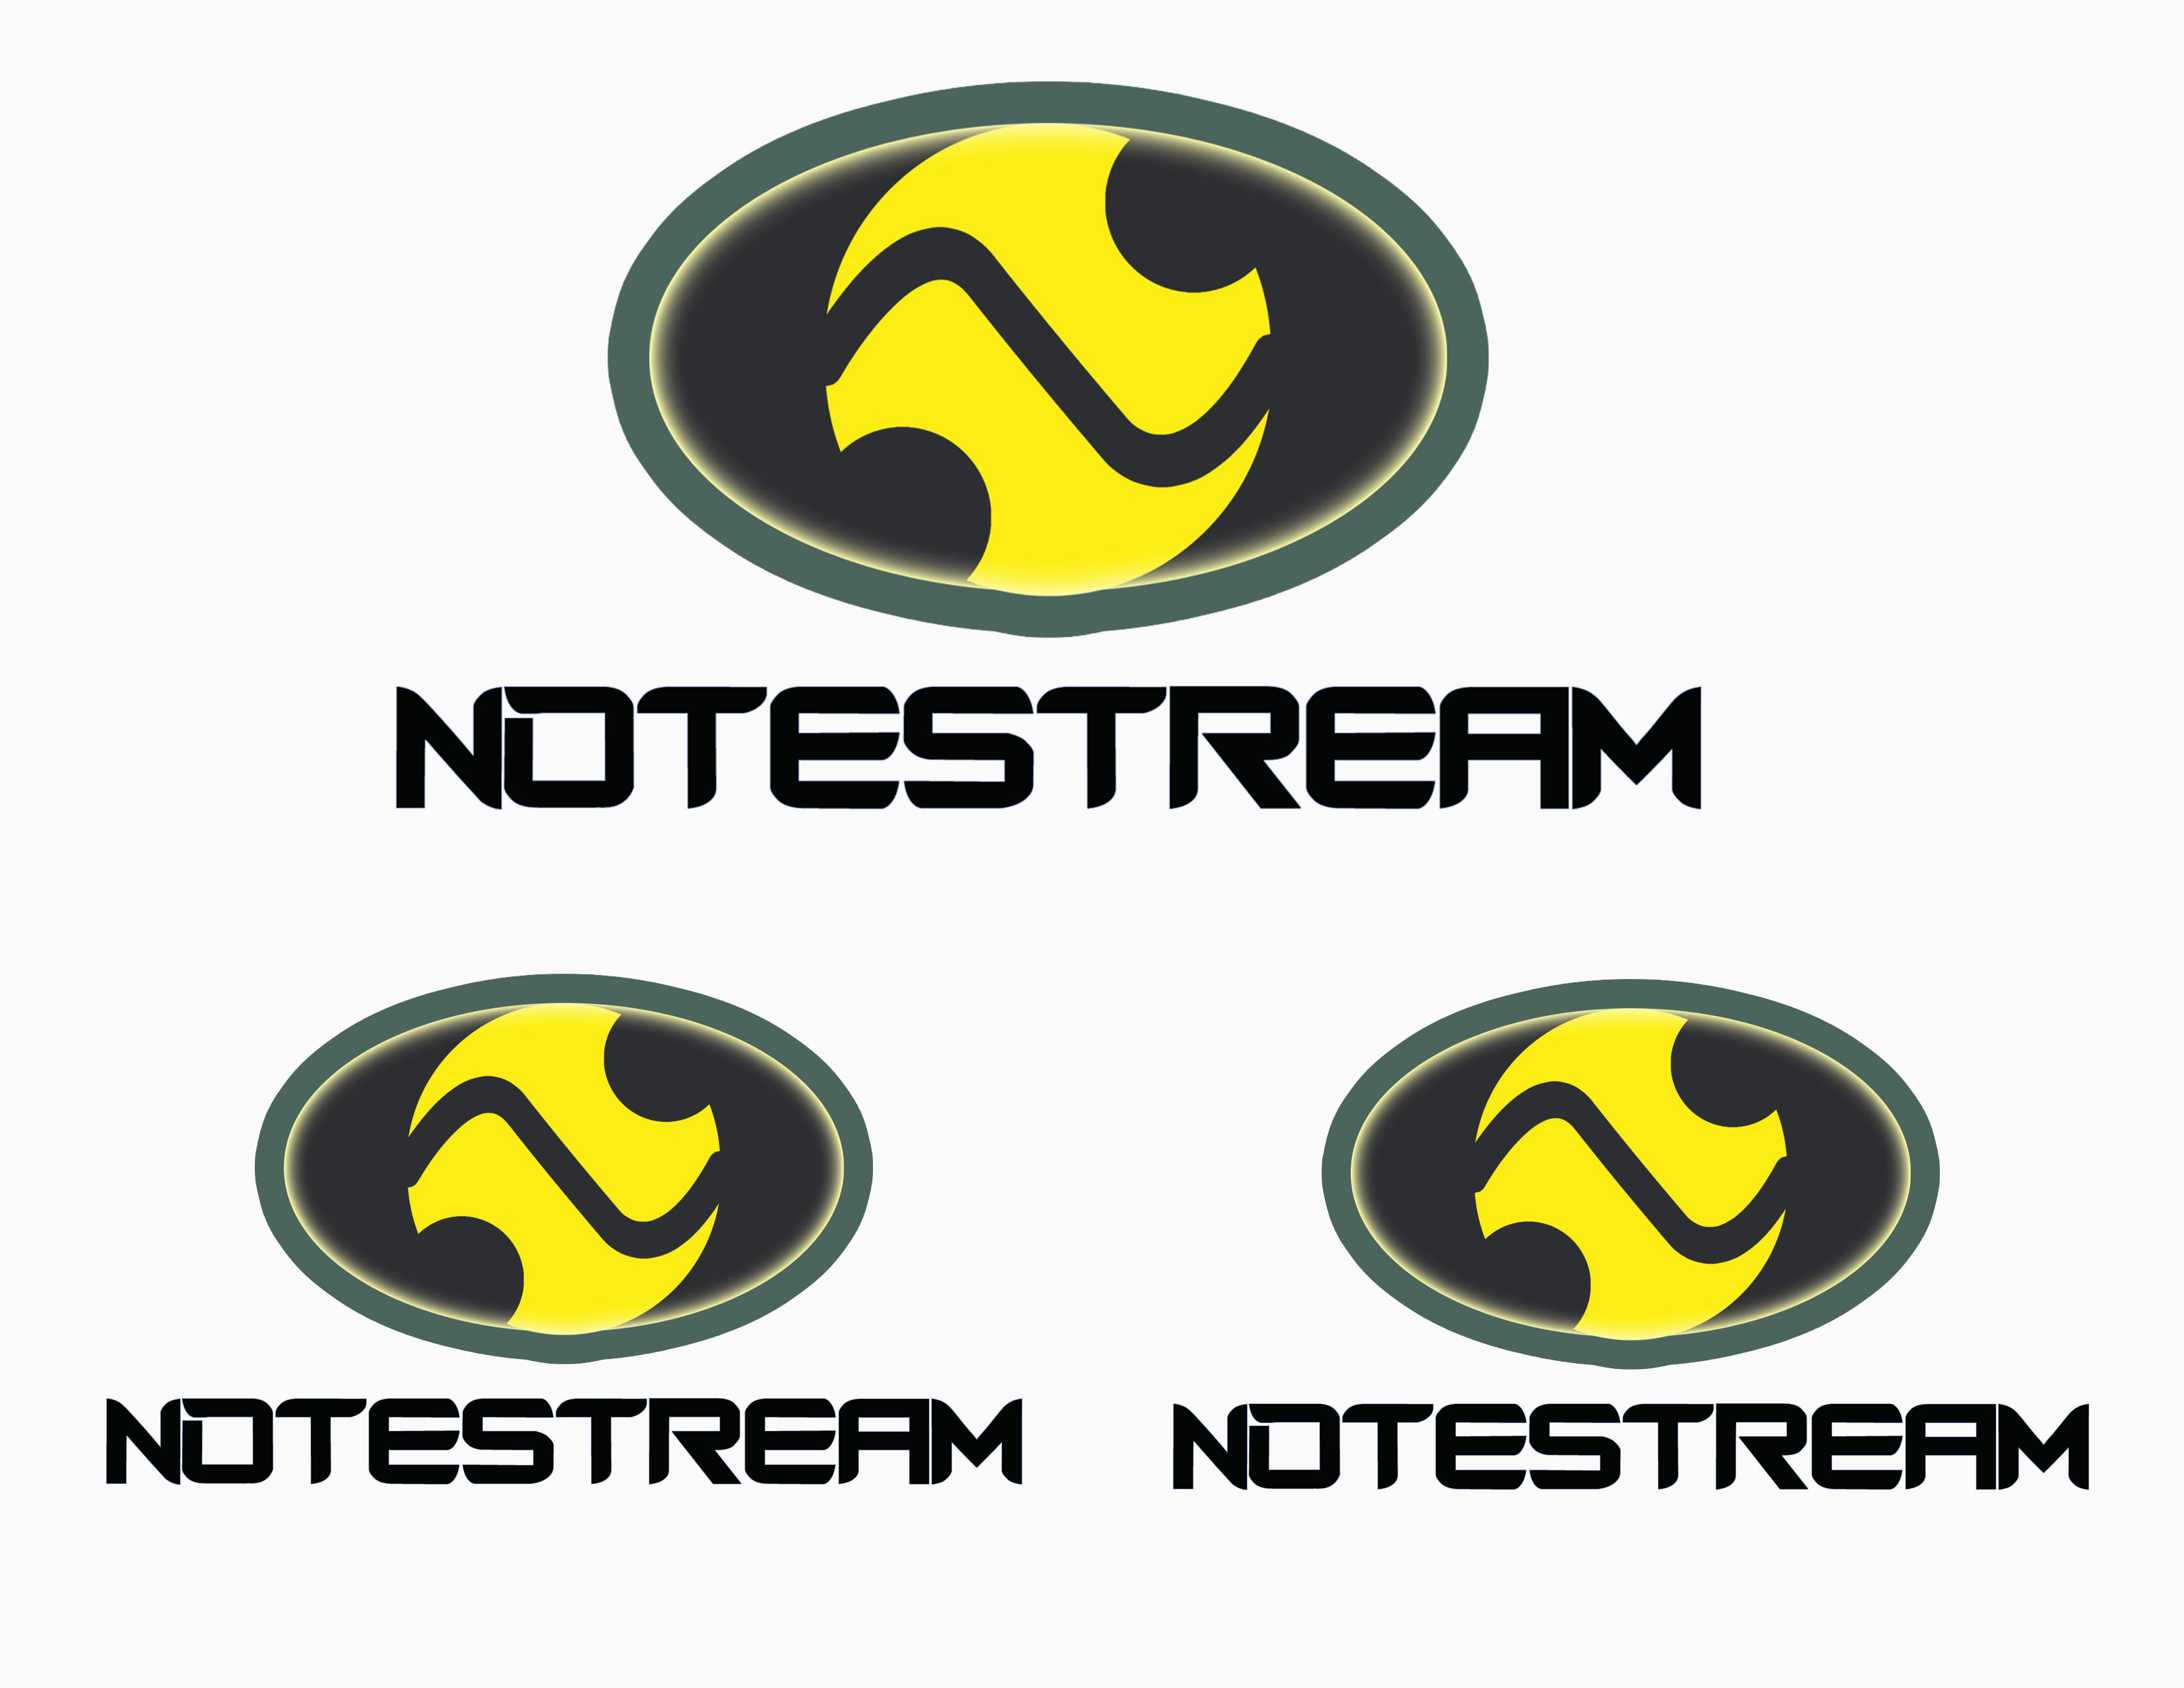 Logo Design by Alan Esclamado - Entry No. 114 in the Logo Design Contest Imaginative Logo Design for NoteStream.